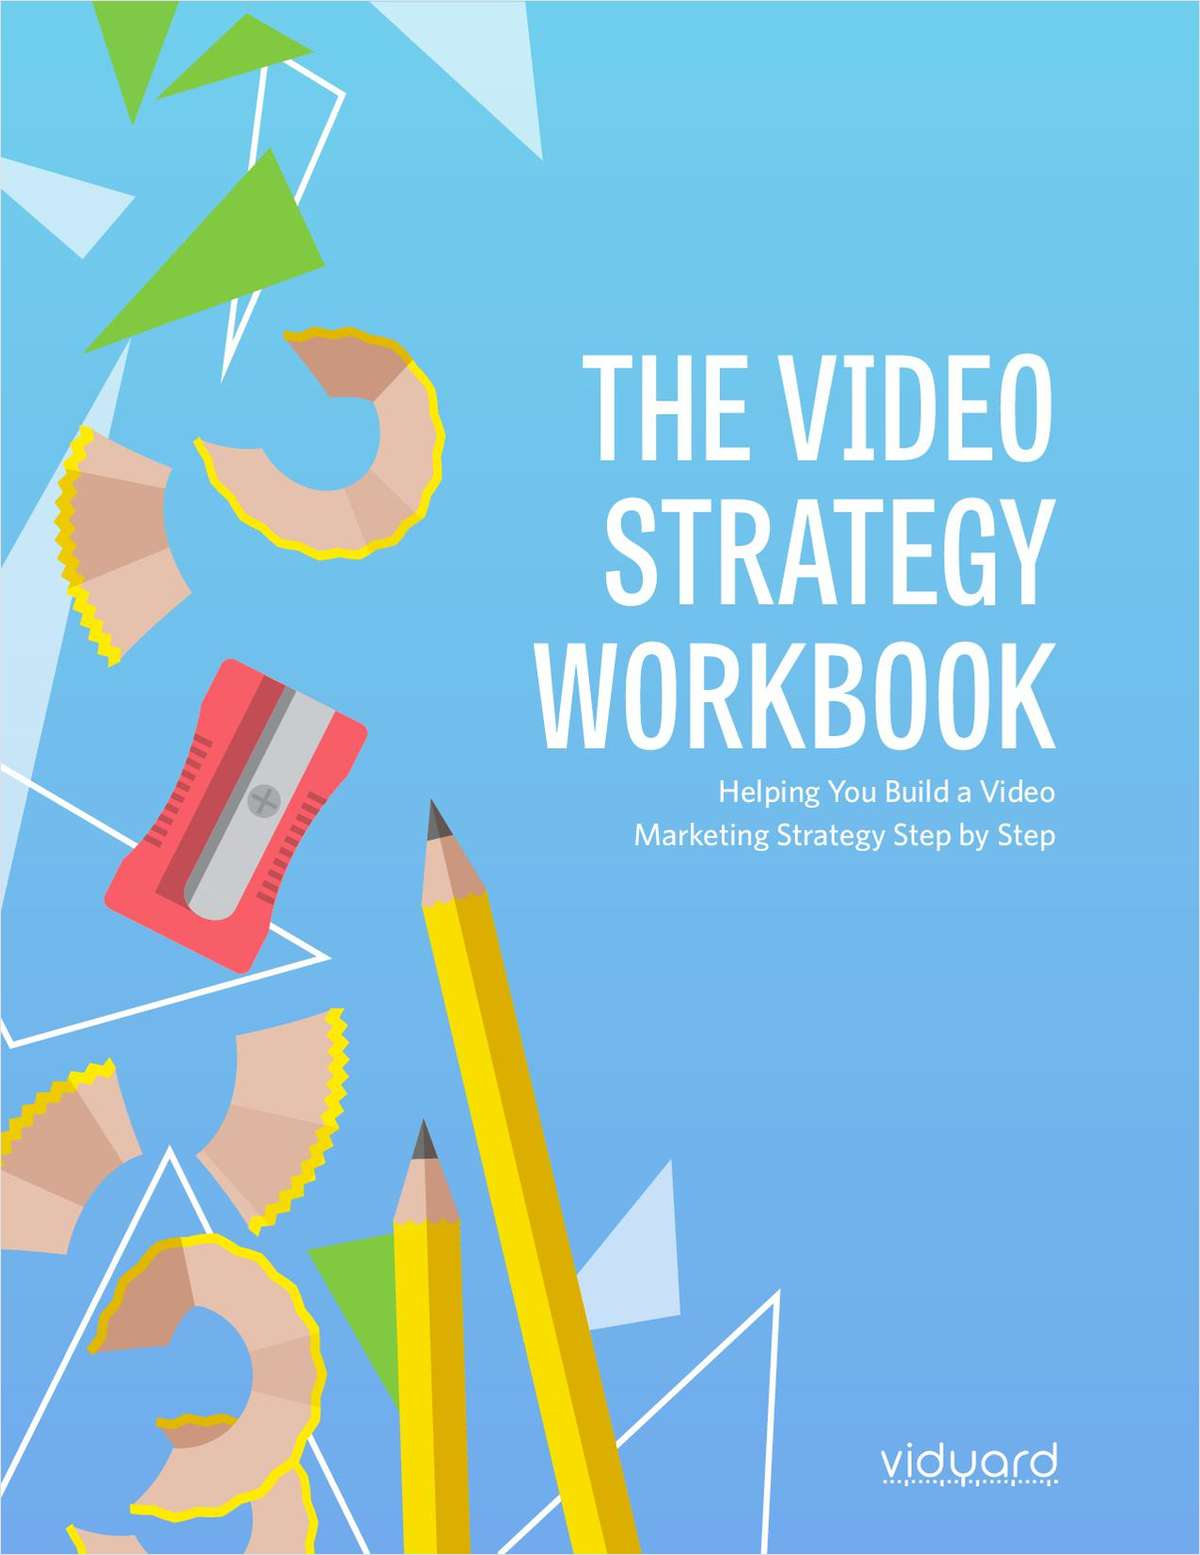 The Video Strategy Workbook